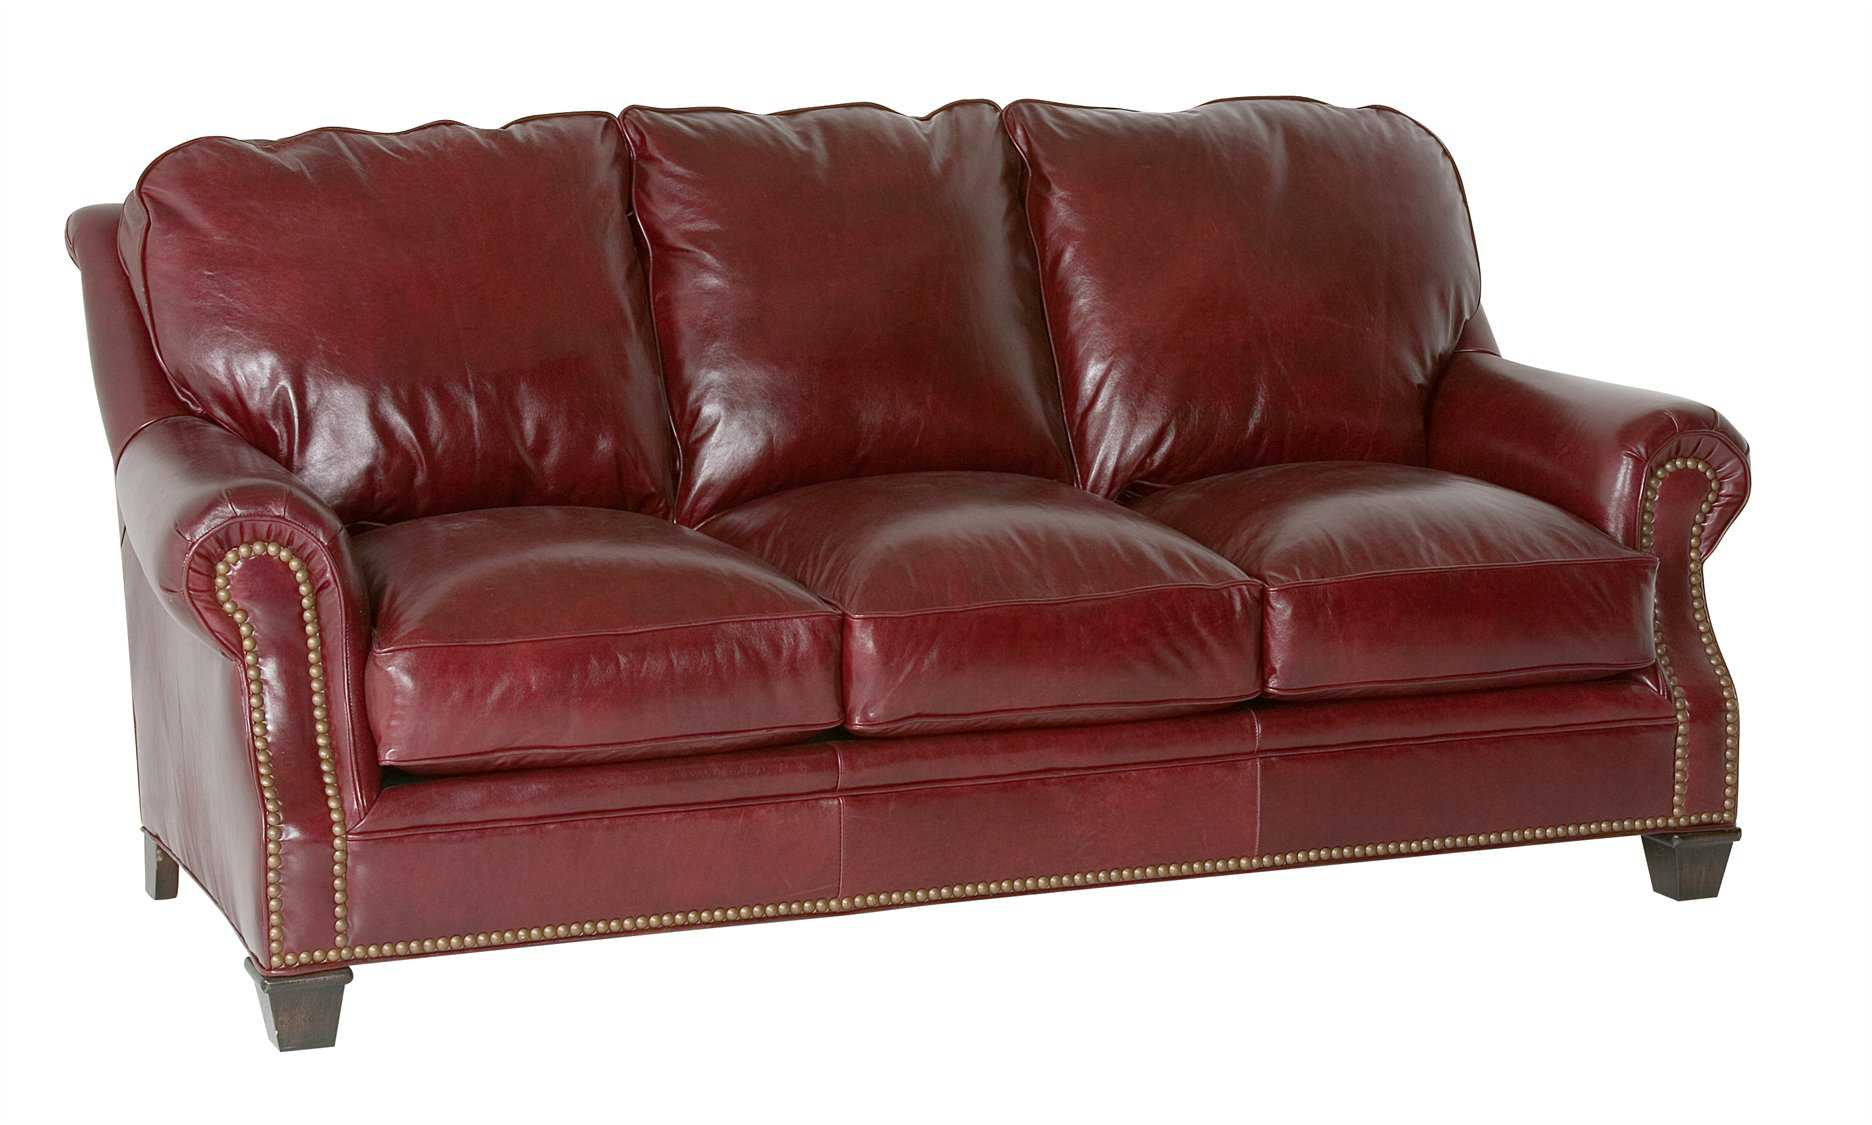 Classic Leather Portsmouth Sofa | CL8028